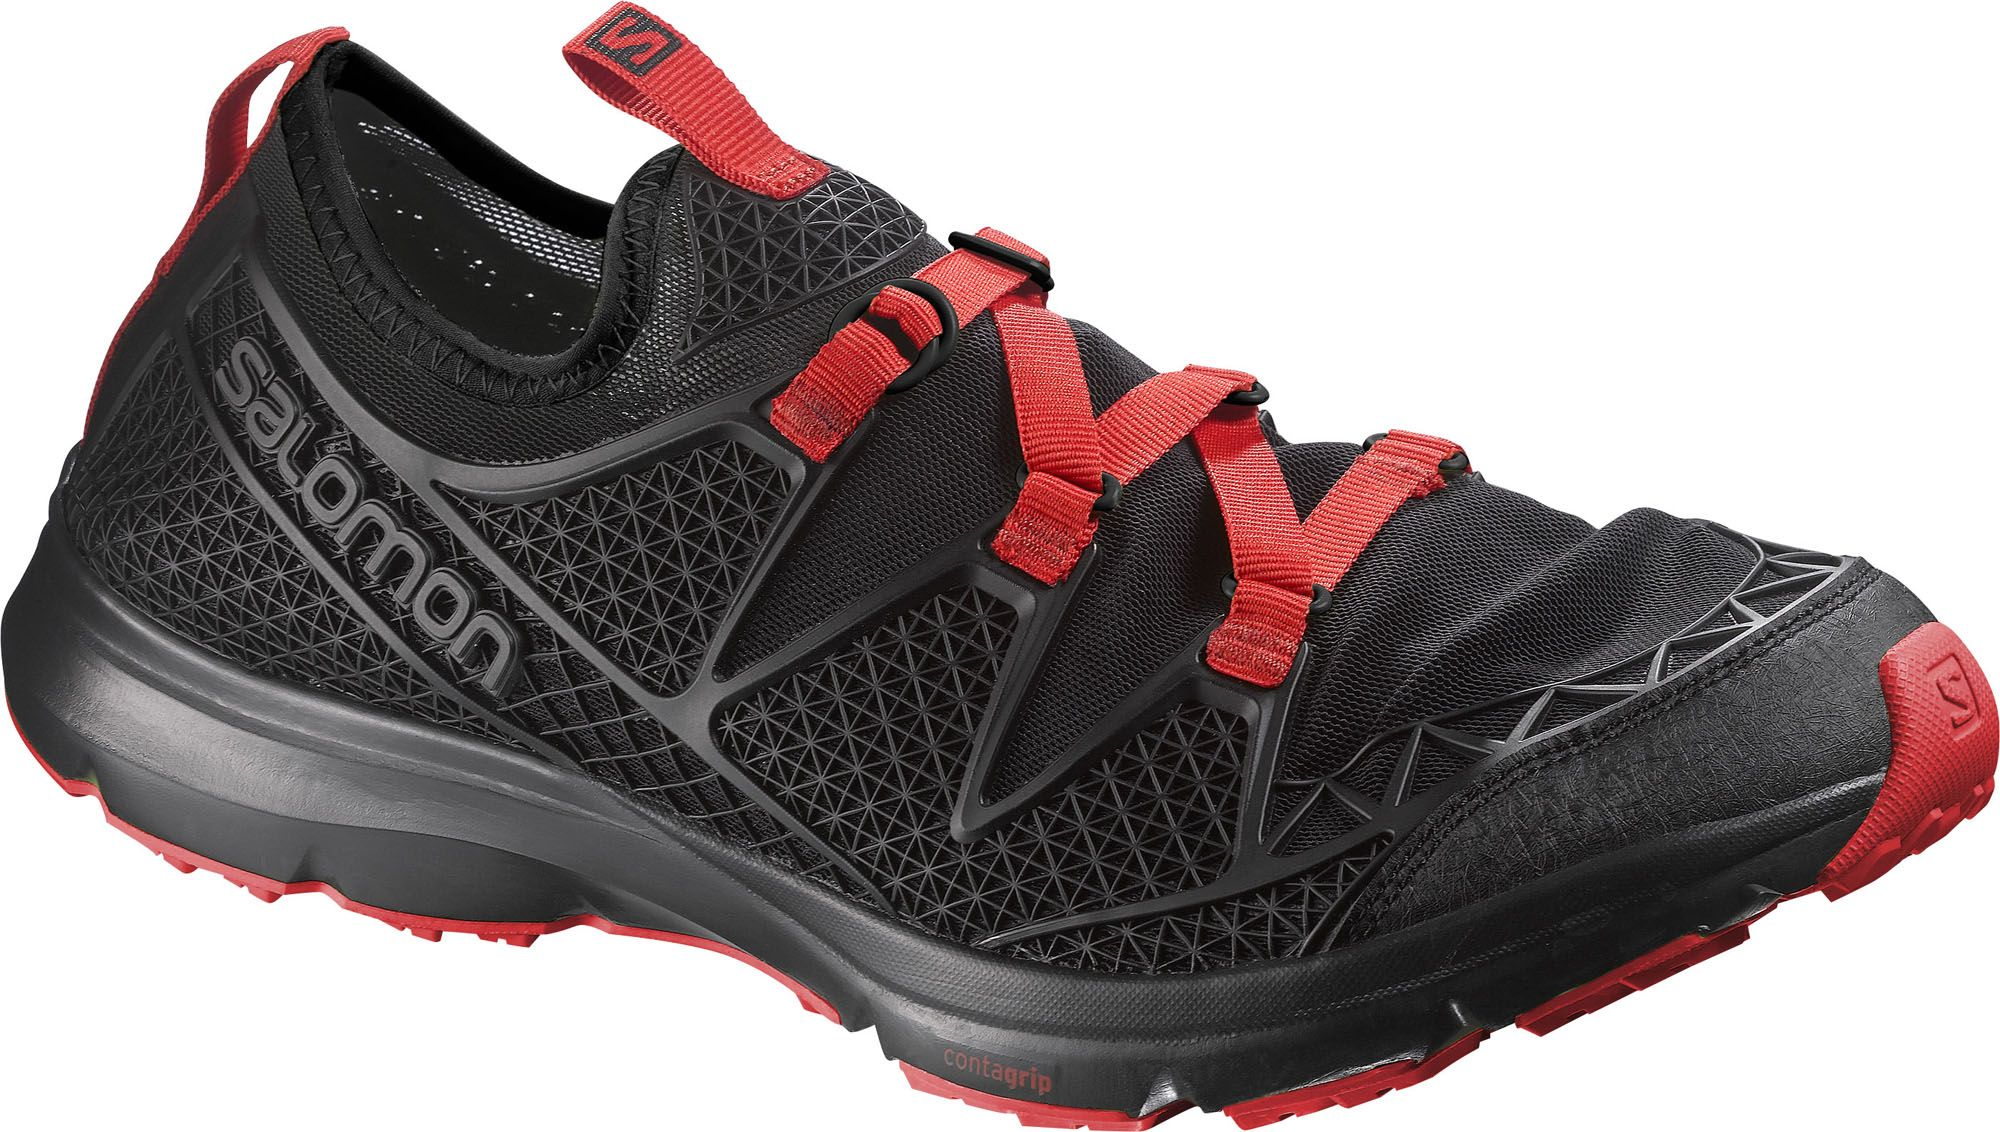 salomon water shoes footwear